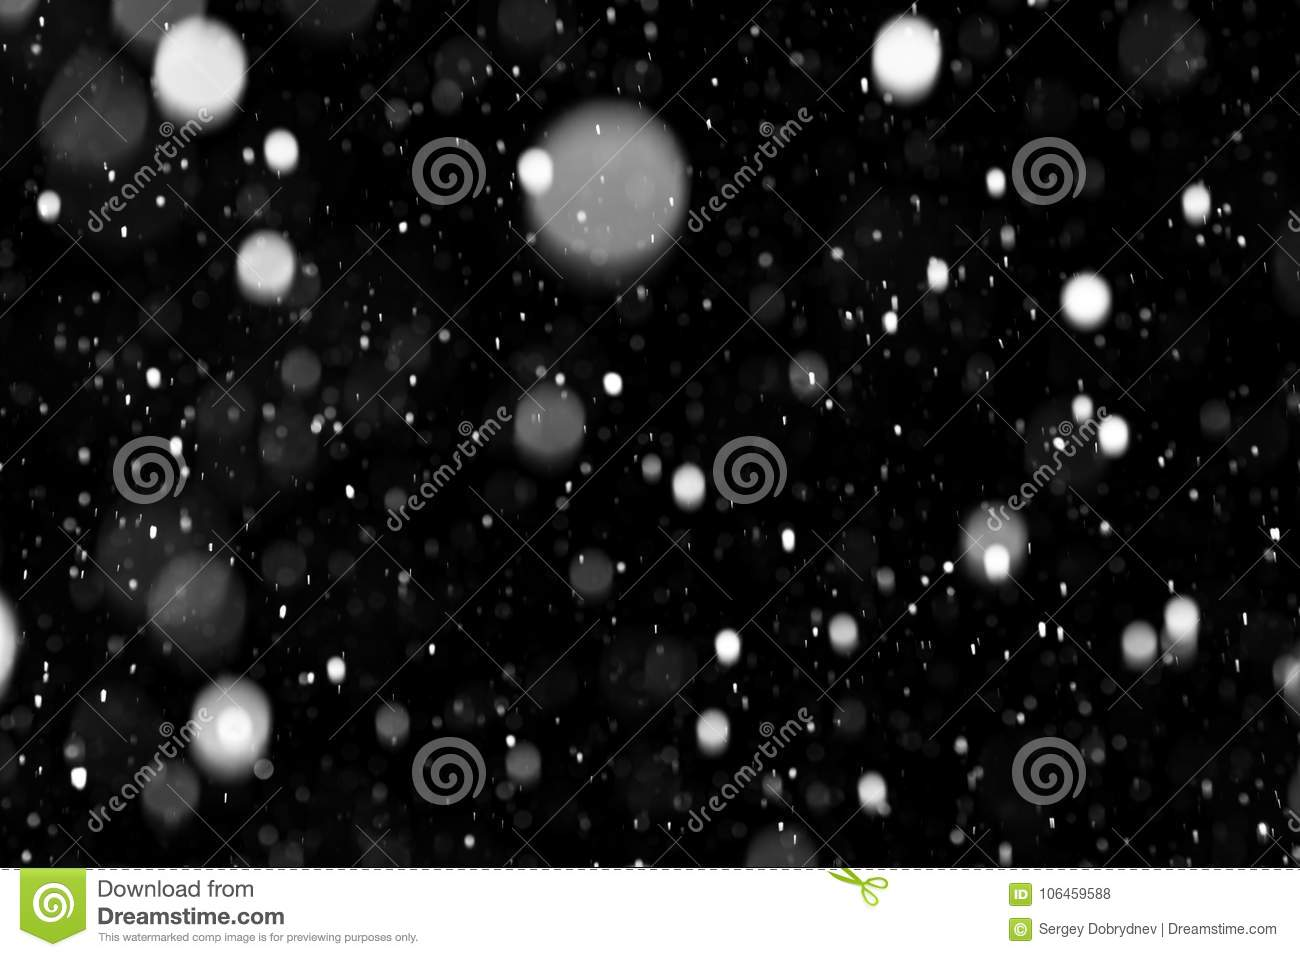 Natural texture of falling snow